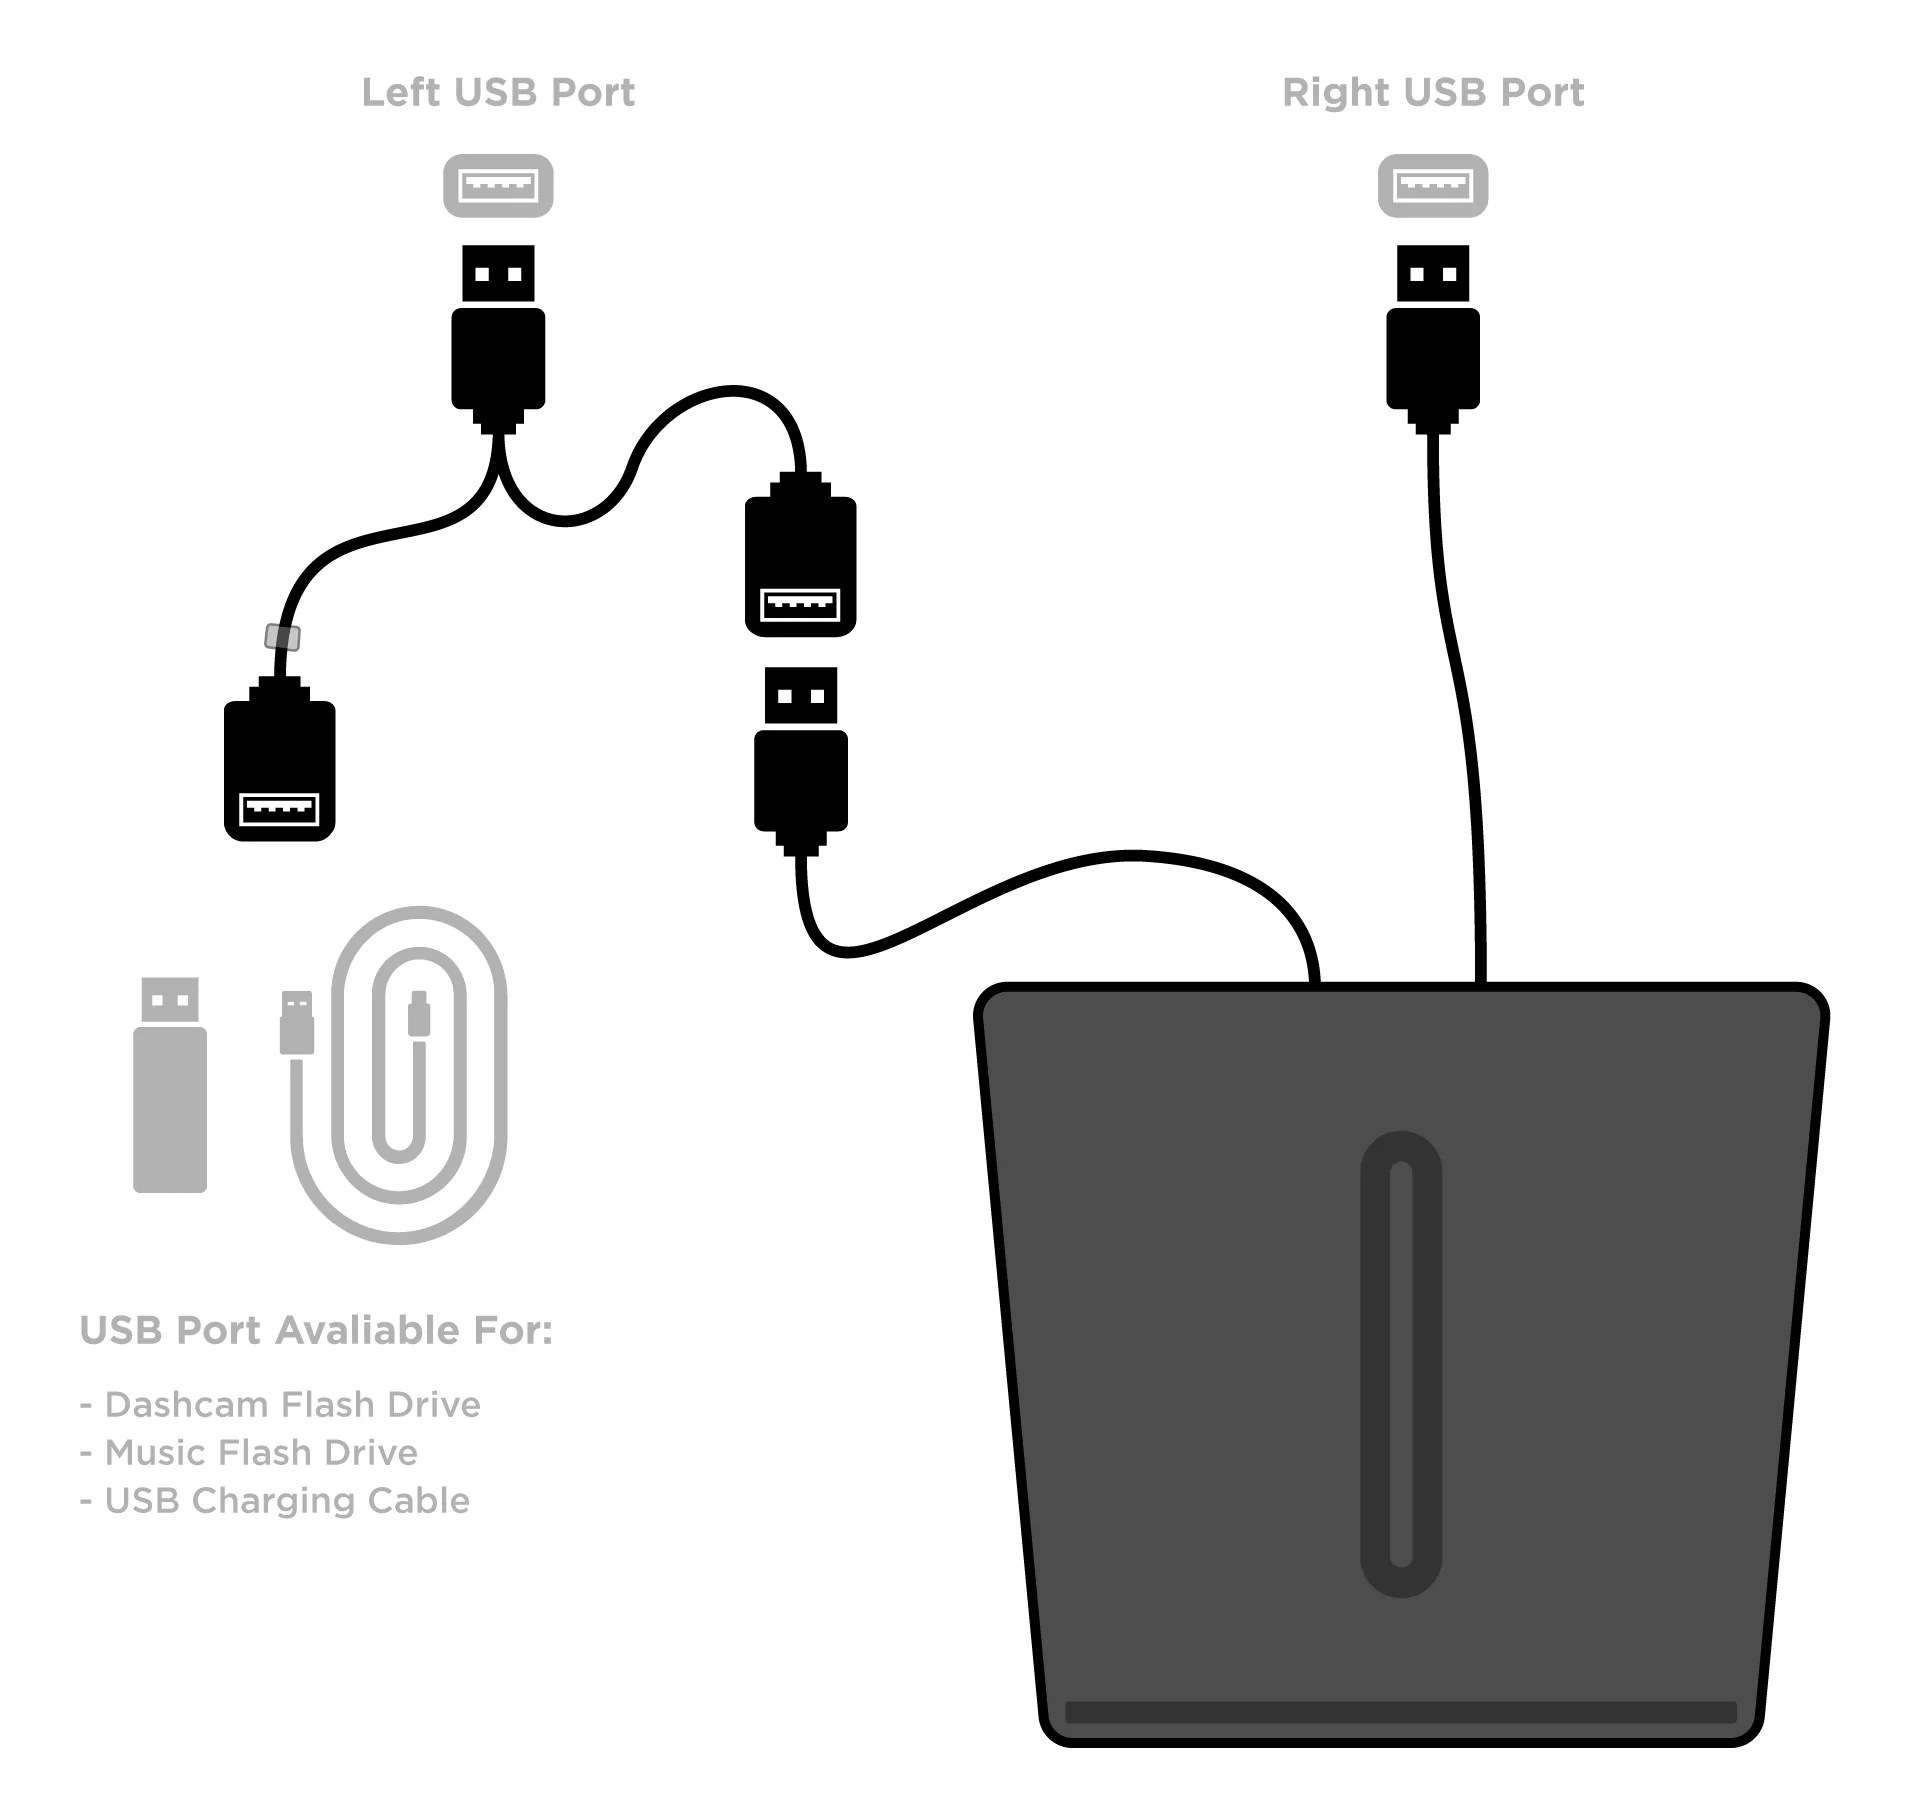 medium resolution of the clear gray tag on the left cable of the usb splitter picture below also appears on the actual usb splitter and indicates the usb port that supports both